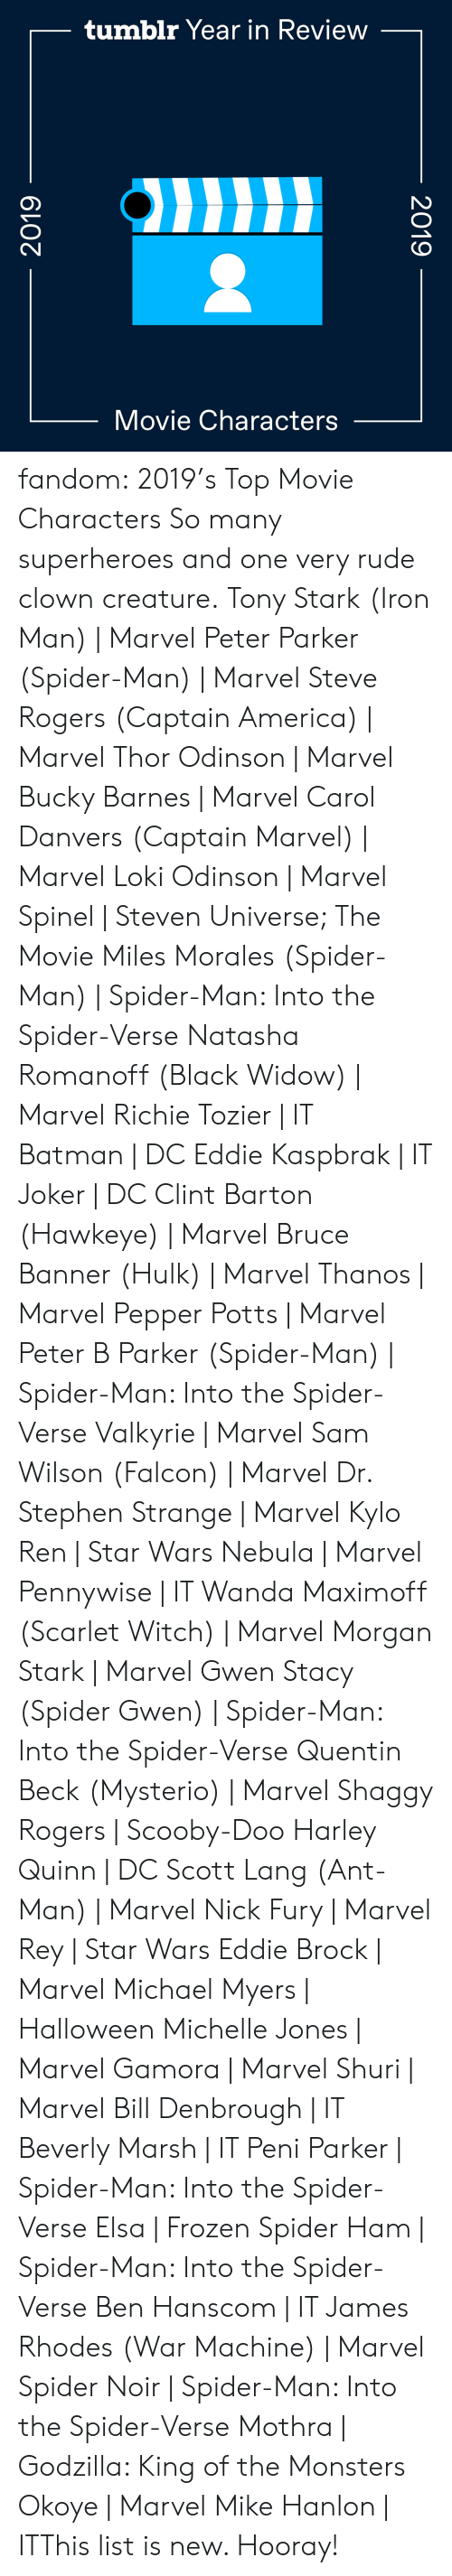 Lang: tumblr Year in Review  Movie Characters  2019  2019 fandom:  2019's Top Movie Characters  So many superheroes and one very rude clown creature.  Tony Stark (Iron Man) | Marvel  Peter Parker (Spider-Man) | Marvel  Steve Rogers (Captain America) | Marvel  Thor Odinson | Marvel  Bucky Barnes | Marvel  Carol Danvers (Captain Marvel) | Marvel  Loki Odinson | Marvel  Spinel | Steven Universe; The Movie  Miles Morales (Spider-Man) | Spider-Man: Into the Spider-Verse  Natasha Romanoff (Black Widow) | Marvel  Richie Tozier | IT  Batman | DC  Eddie Kaspbrak | IT  Joker | DC  Clint Barton (Hawkeye) | Marvel  Bruce Banner (Hulk) | Marvel  Thanos | Marvel  Pepper Potts | Marvel  Peter B Parker (Spider-Man) | Spider-Man: Into the Spider-Verse  Valkyrie | Marvel  Sam Wilson (Falcon) | Marvel  Dr. Stephen Strange | Marvel  Kylo Ren | Star Wars  Nebula | Marvel  Pennywise | IT  Wanda Maximoff (Scarlet Witch) | Marvel  Morgan Stark | Marvel  Gwen Stacy (Spider Gwen) | Spider-Man: Into the Spider-Verse  Quentin Beck (Mysterio) | Marvel  Shaggy Rogers | Scooby-Doo  Harley Quinn | DC  Scott Lang (Ant-Man) | Marvel  Nick Fury | Marvel  Rey | Star Wars  Eddie Brock | Marvel  Michael Myers | Halloween  Michelle Jones | Marvel  Gamora | Marvel  Shuri | Marvel  Bill Denbrough | IT  Beverly Marsh | IT  Peni Parker | Spider-Man: Into the Spider-Verse  Elsa | Frozen  Spider Ham | Spider-Man: Into the Spider-Verse  Ben Hanscom | IT  James Rhodes (War Machine) | Marvel  Spider Noir | Spider-Man: Into the Spider-Verse  Mothra | Godzilla: King of the Monsters  Okoye | Marvel Mike Hanlon | ITThis list is new. Hooray!